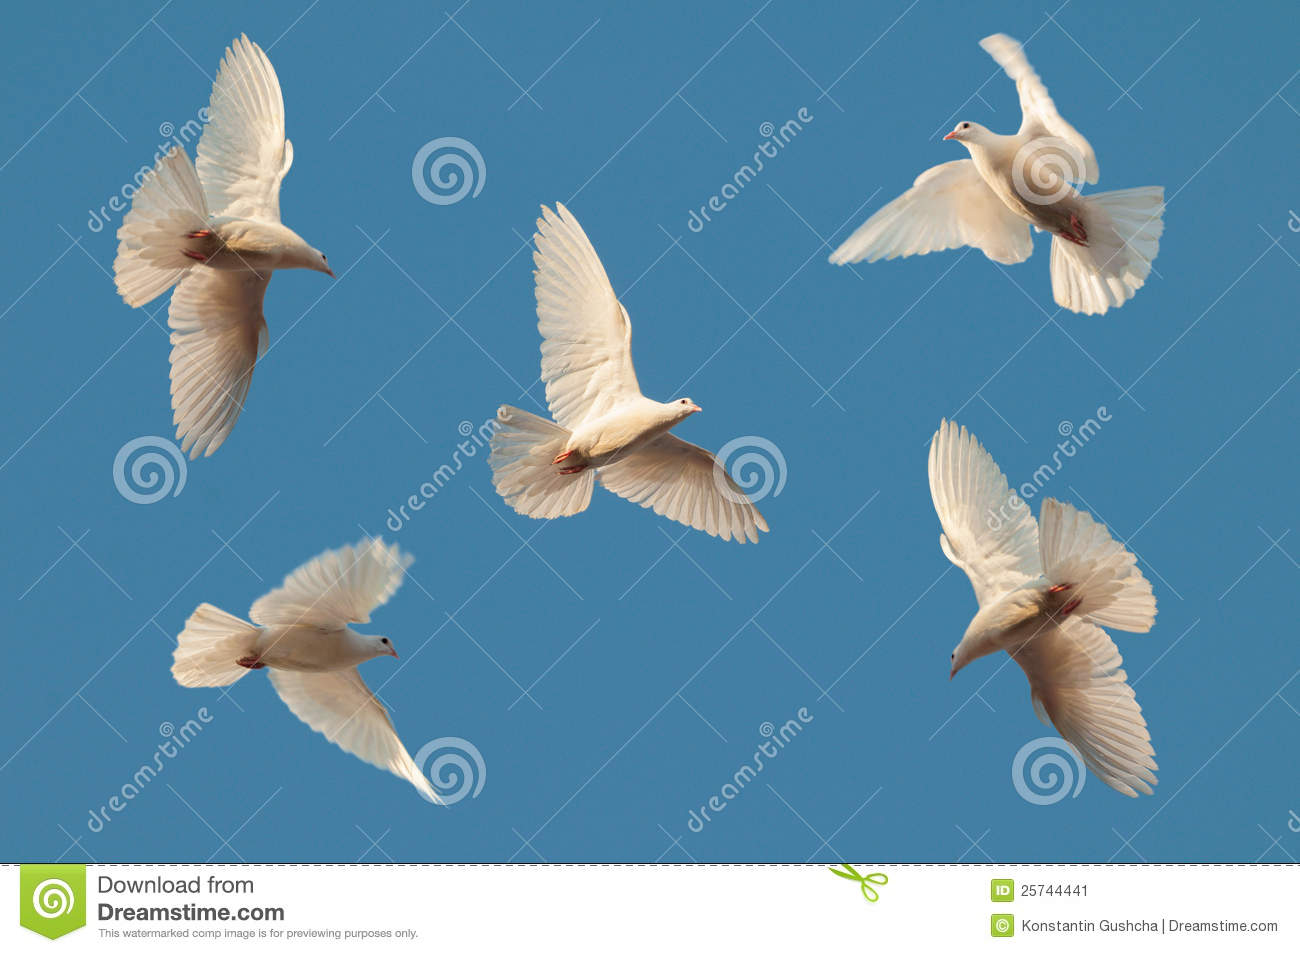 Five white pigeons fly in the sky